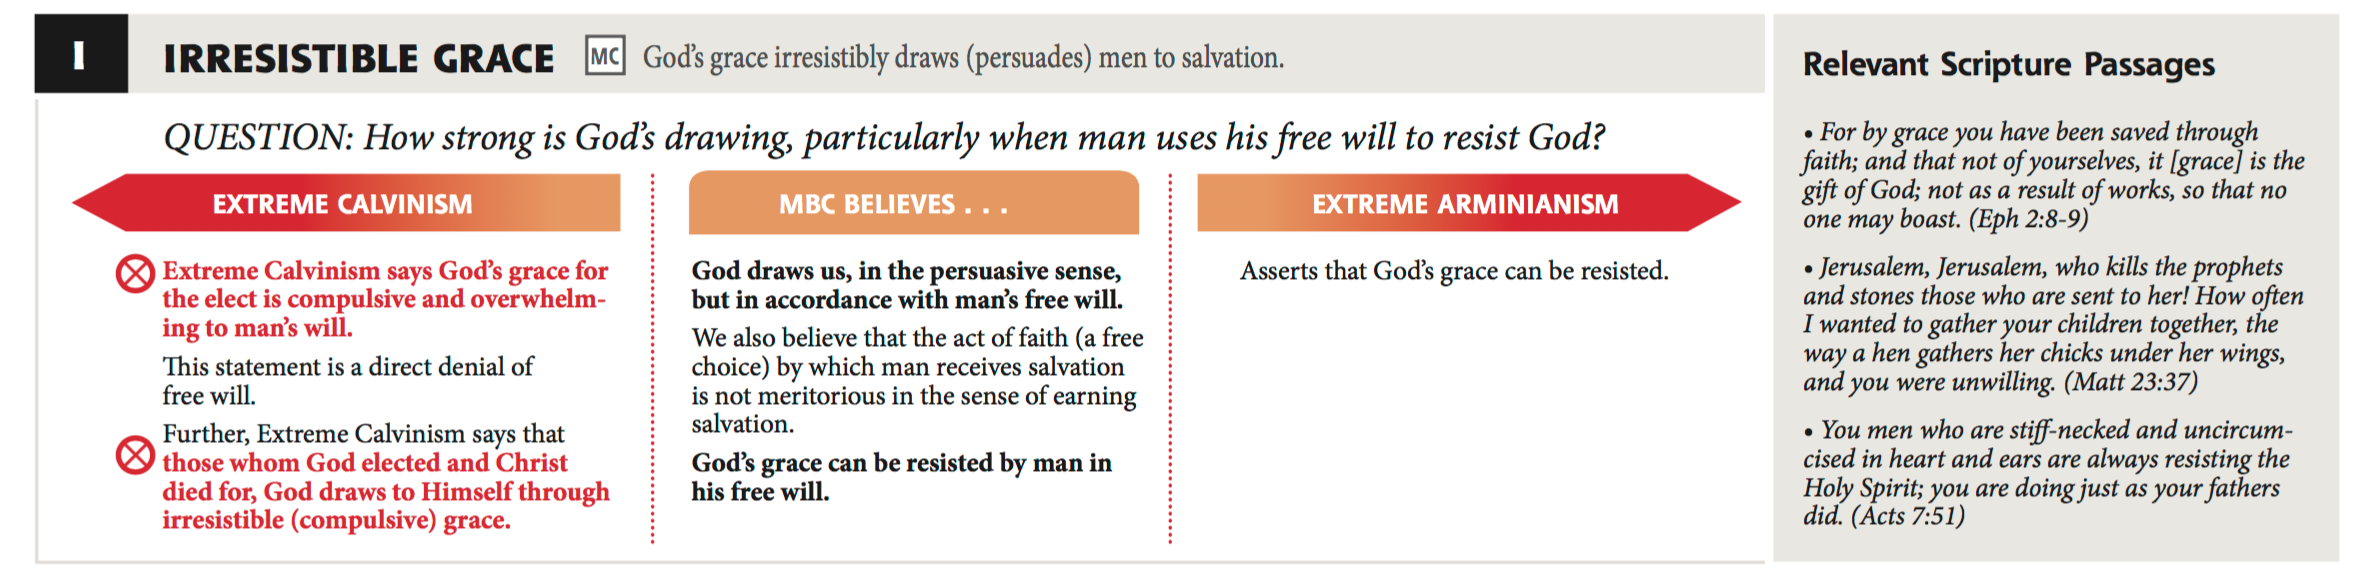 https://web.archive.org/web/20140703022230/http://www.mcleanbible.org/uploads/mbc_calvinism_position_2012_overview.pdf